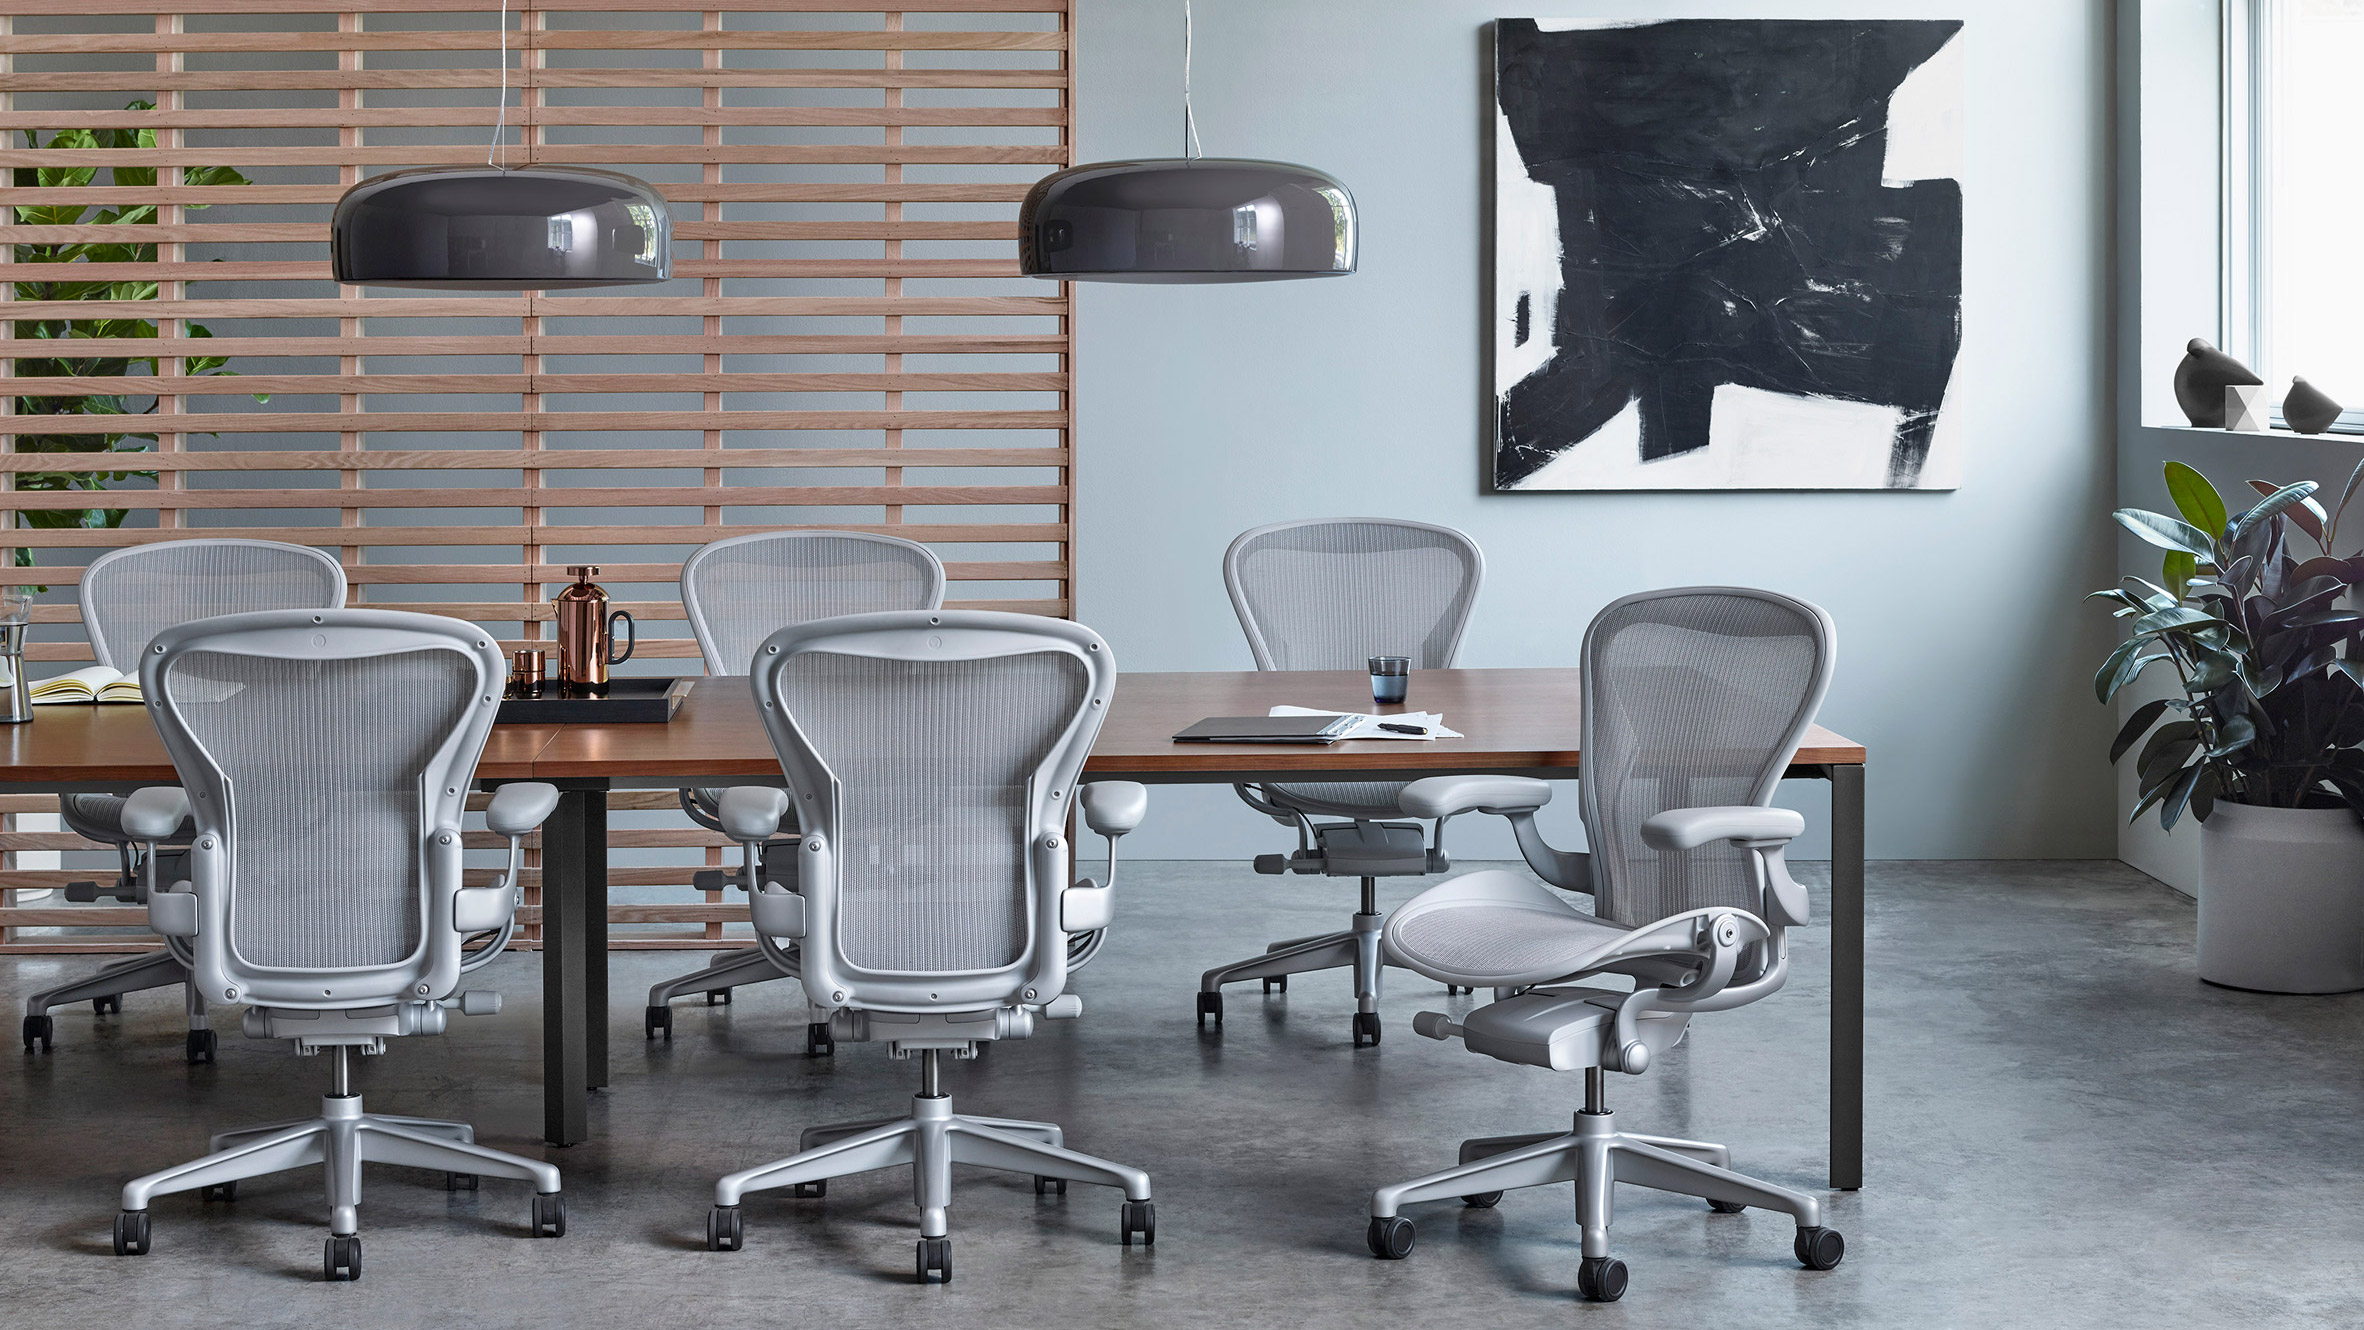 Herman Miller updates Aeron chair by Bill Stumpf and Don Chadwick